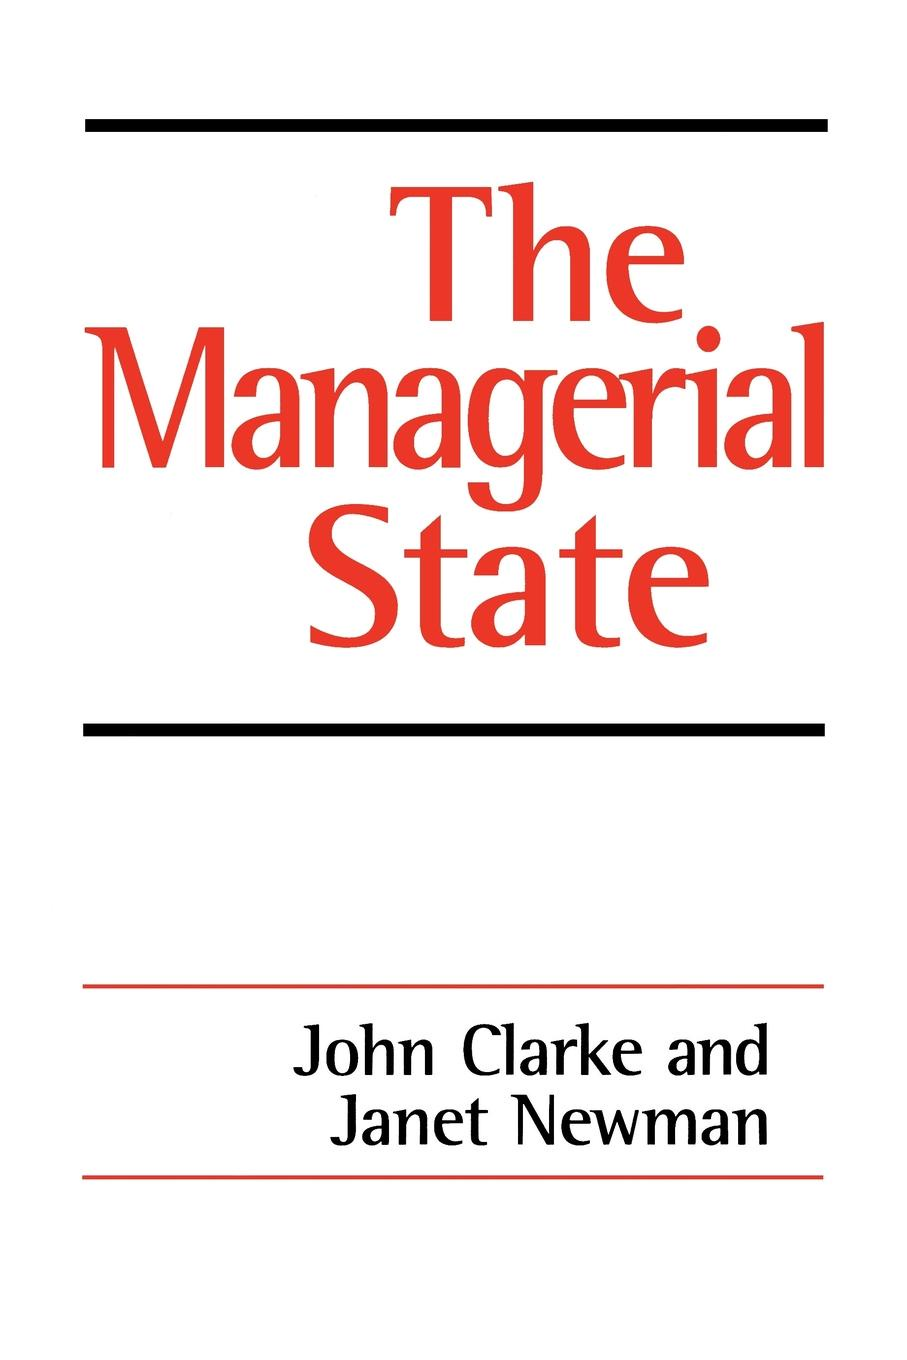 John Clarke, Janet E. Newman, Janet Newman The Managerial State. Power, Politics and Ideology in the Remaking of Social Welfare burke o long planting and reaping albright politics ideology and interpreting the bible